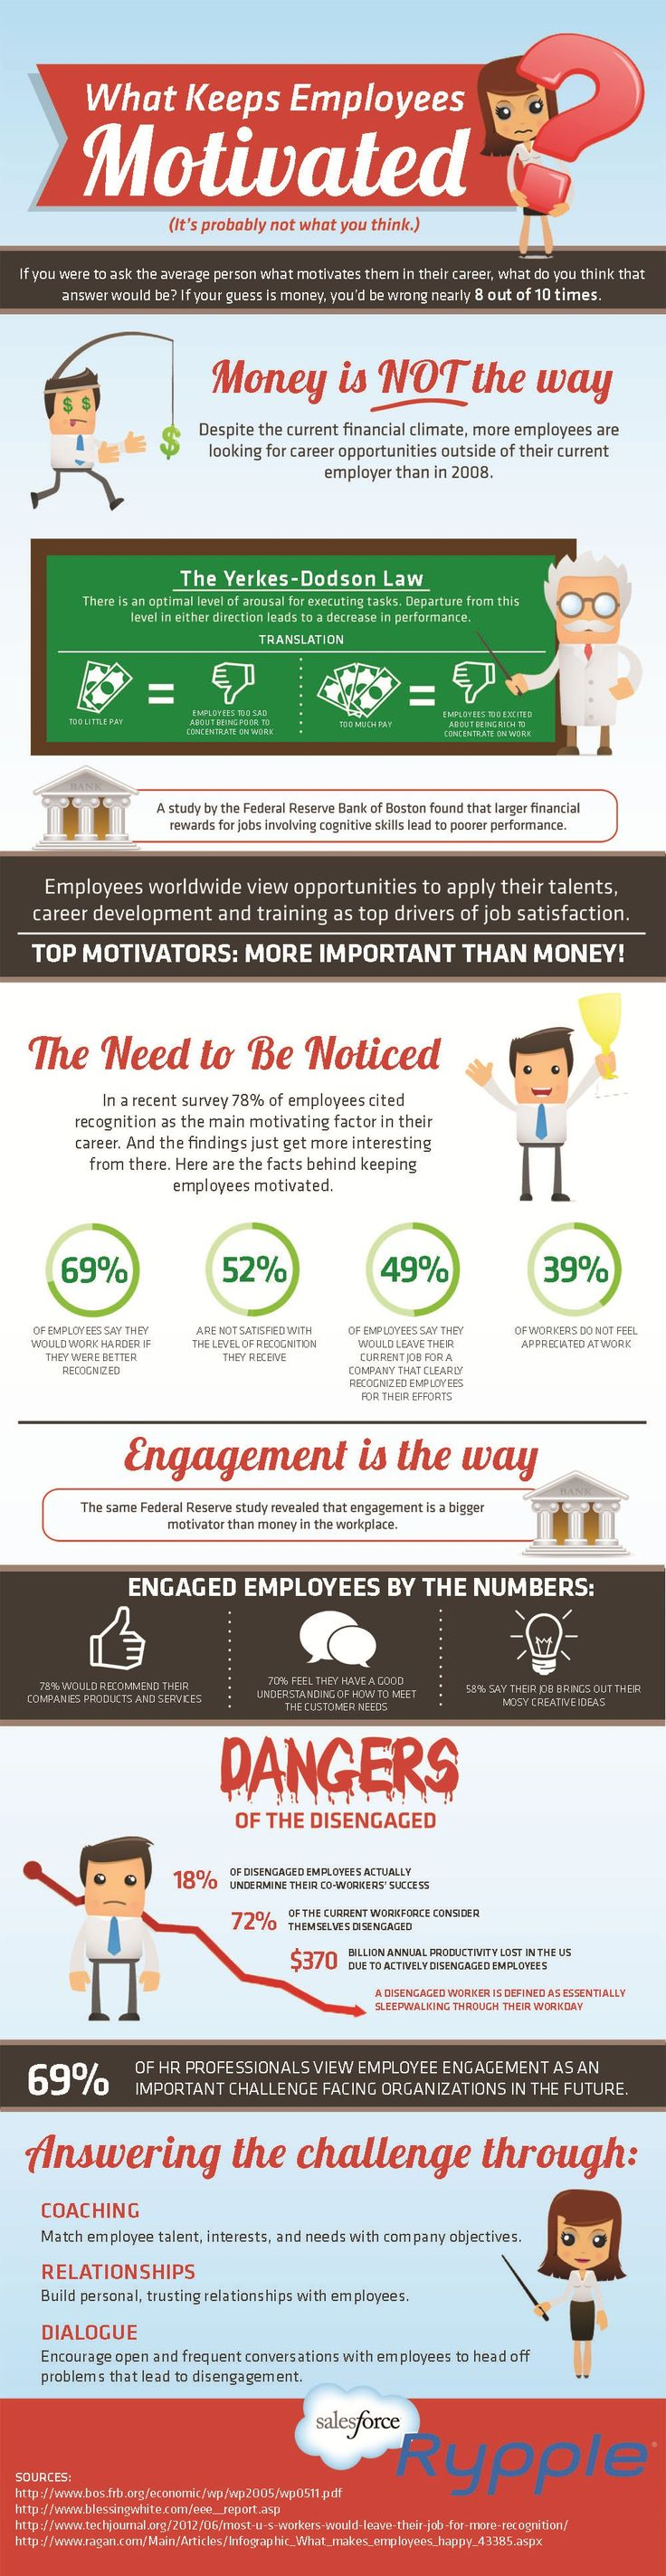 What Keeps Employees Motivated - An excellent infographic shared by #leadwithgiants community blogs